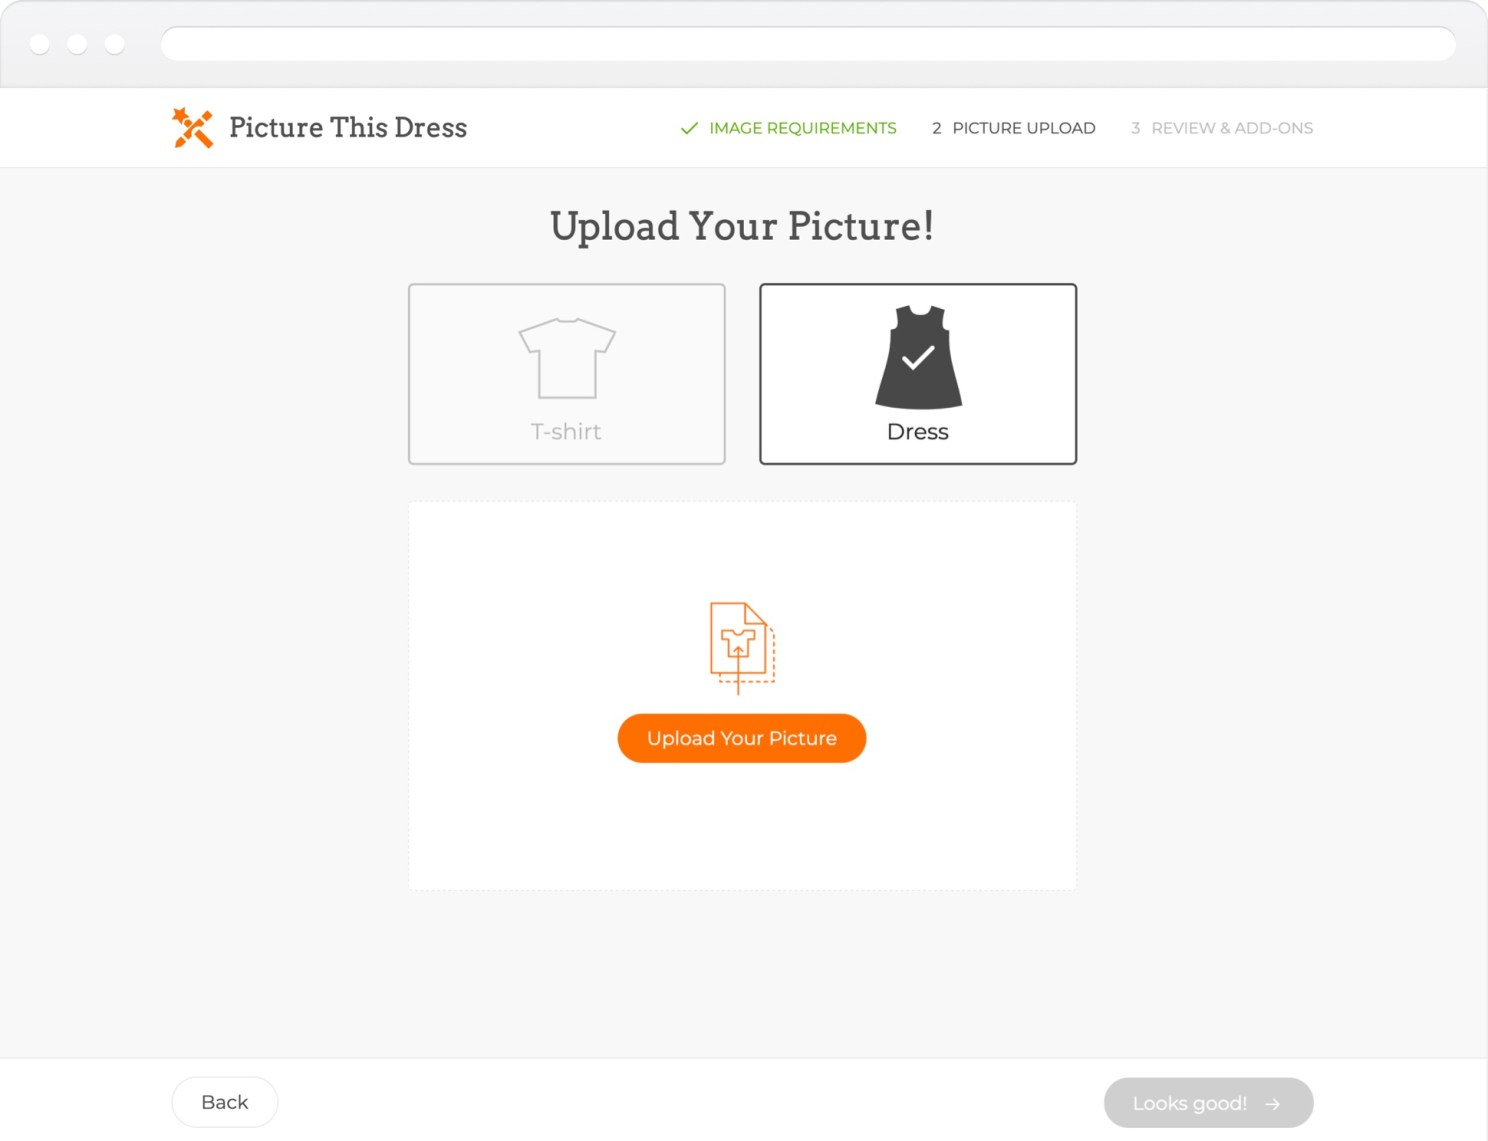 06C_Checkout - Ordering